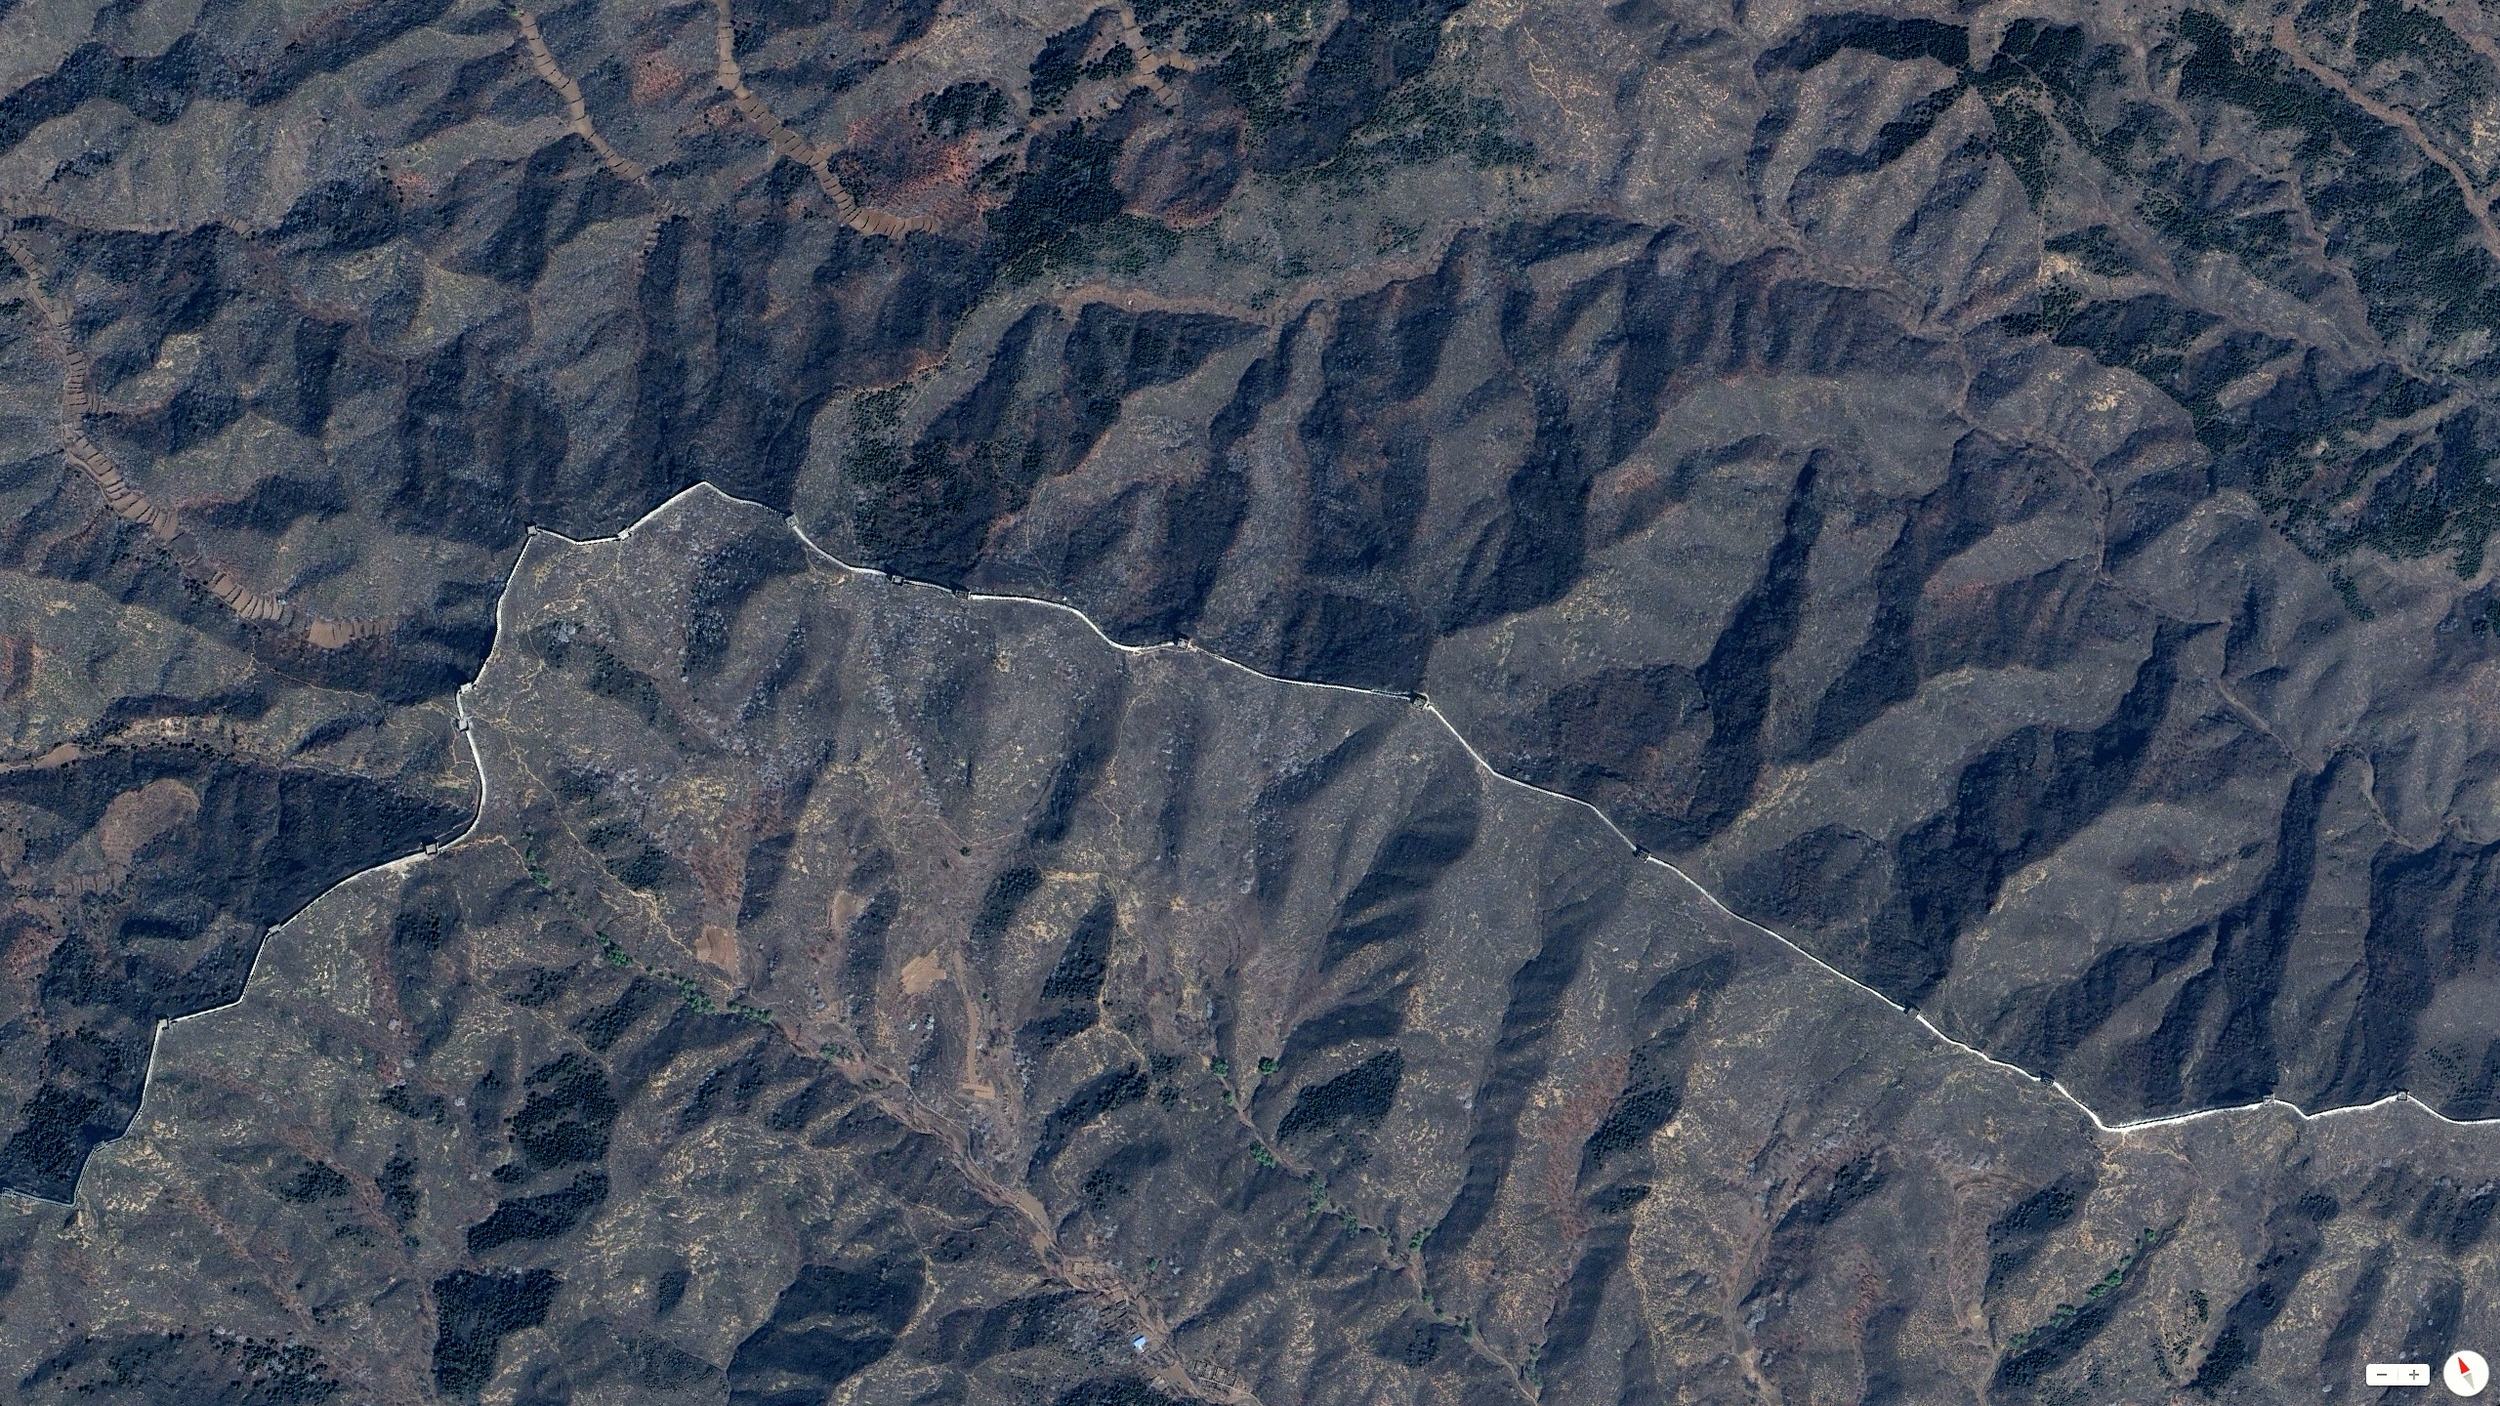 2/3/2014    Great Wall of China   Northern China   40.67693°N 117.23193°E